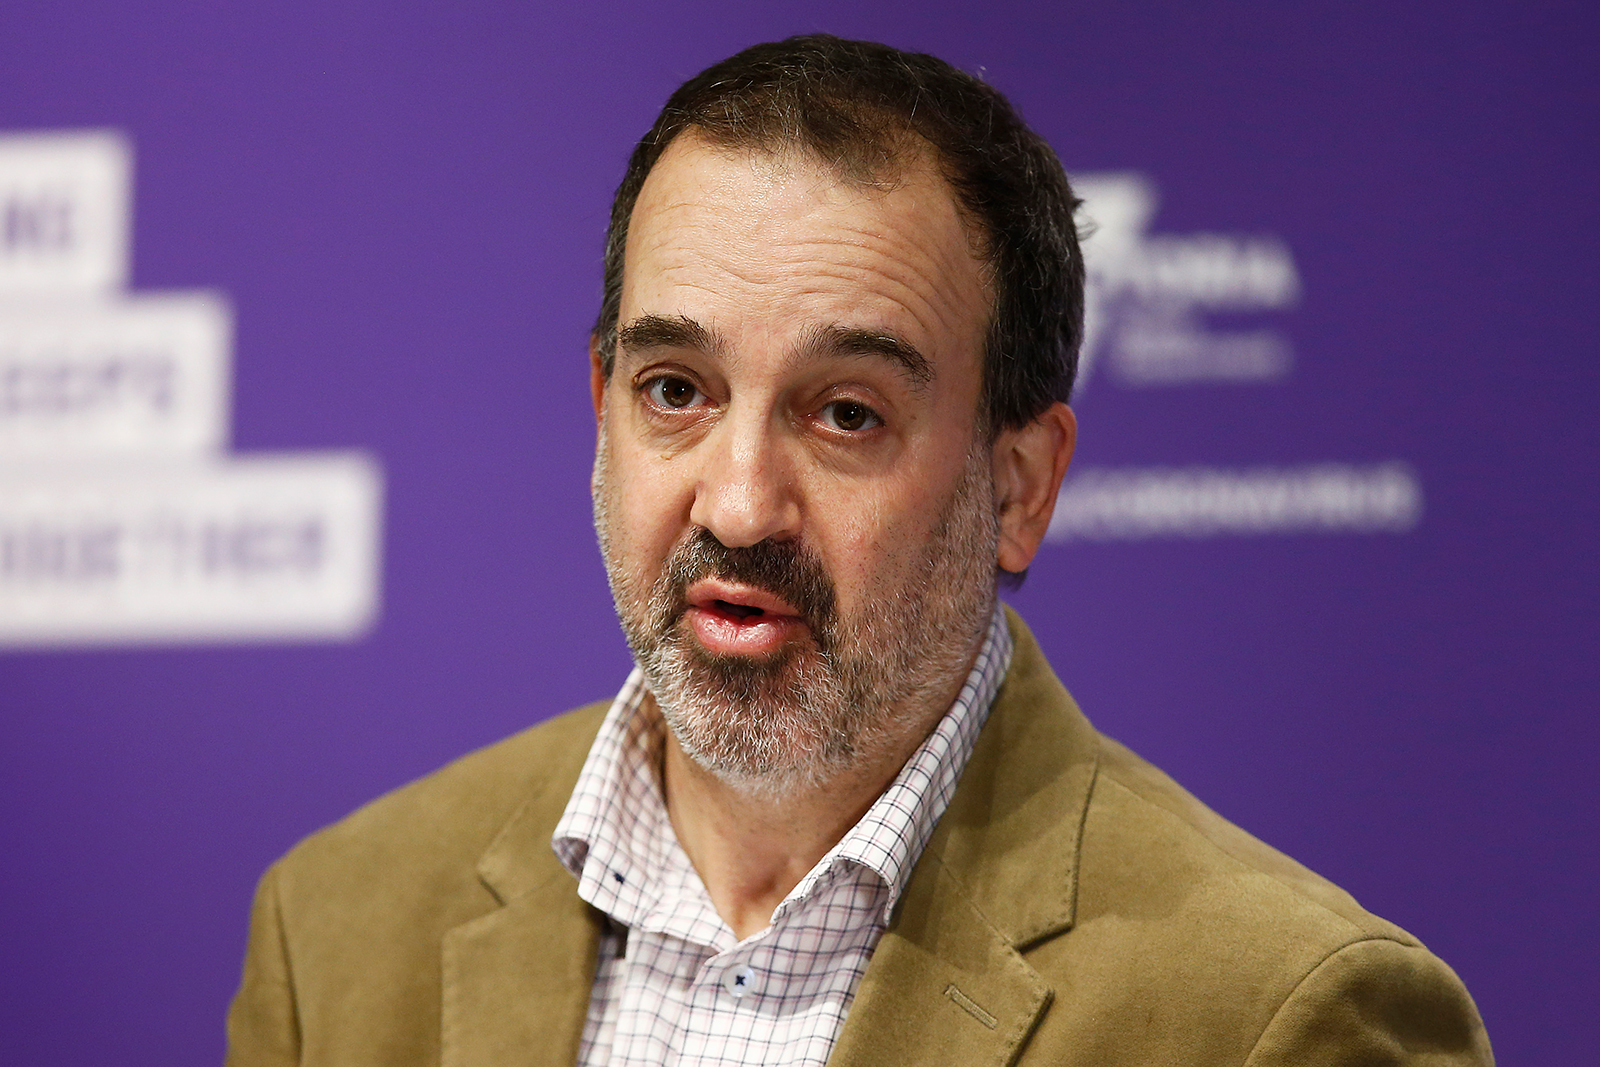 Victoria's Minister for Jobs, Innovation and Trade, Martin Pakula speaks to the media during a news conference in Melbourne, Australia, on Sept. 14.